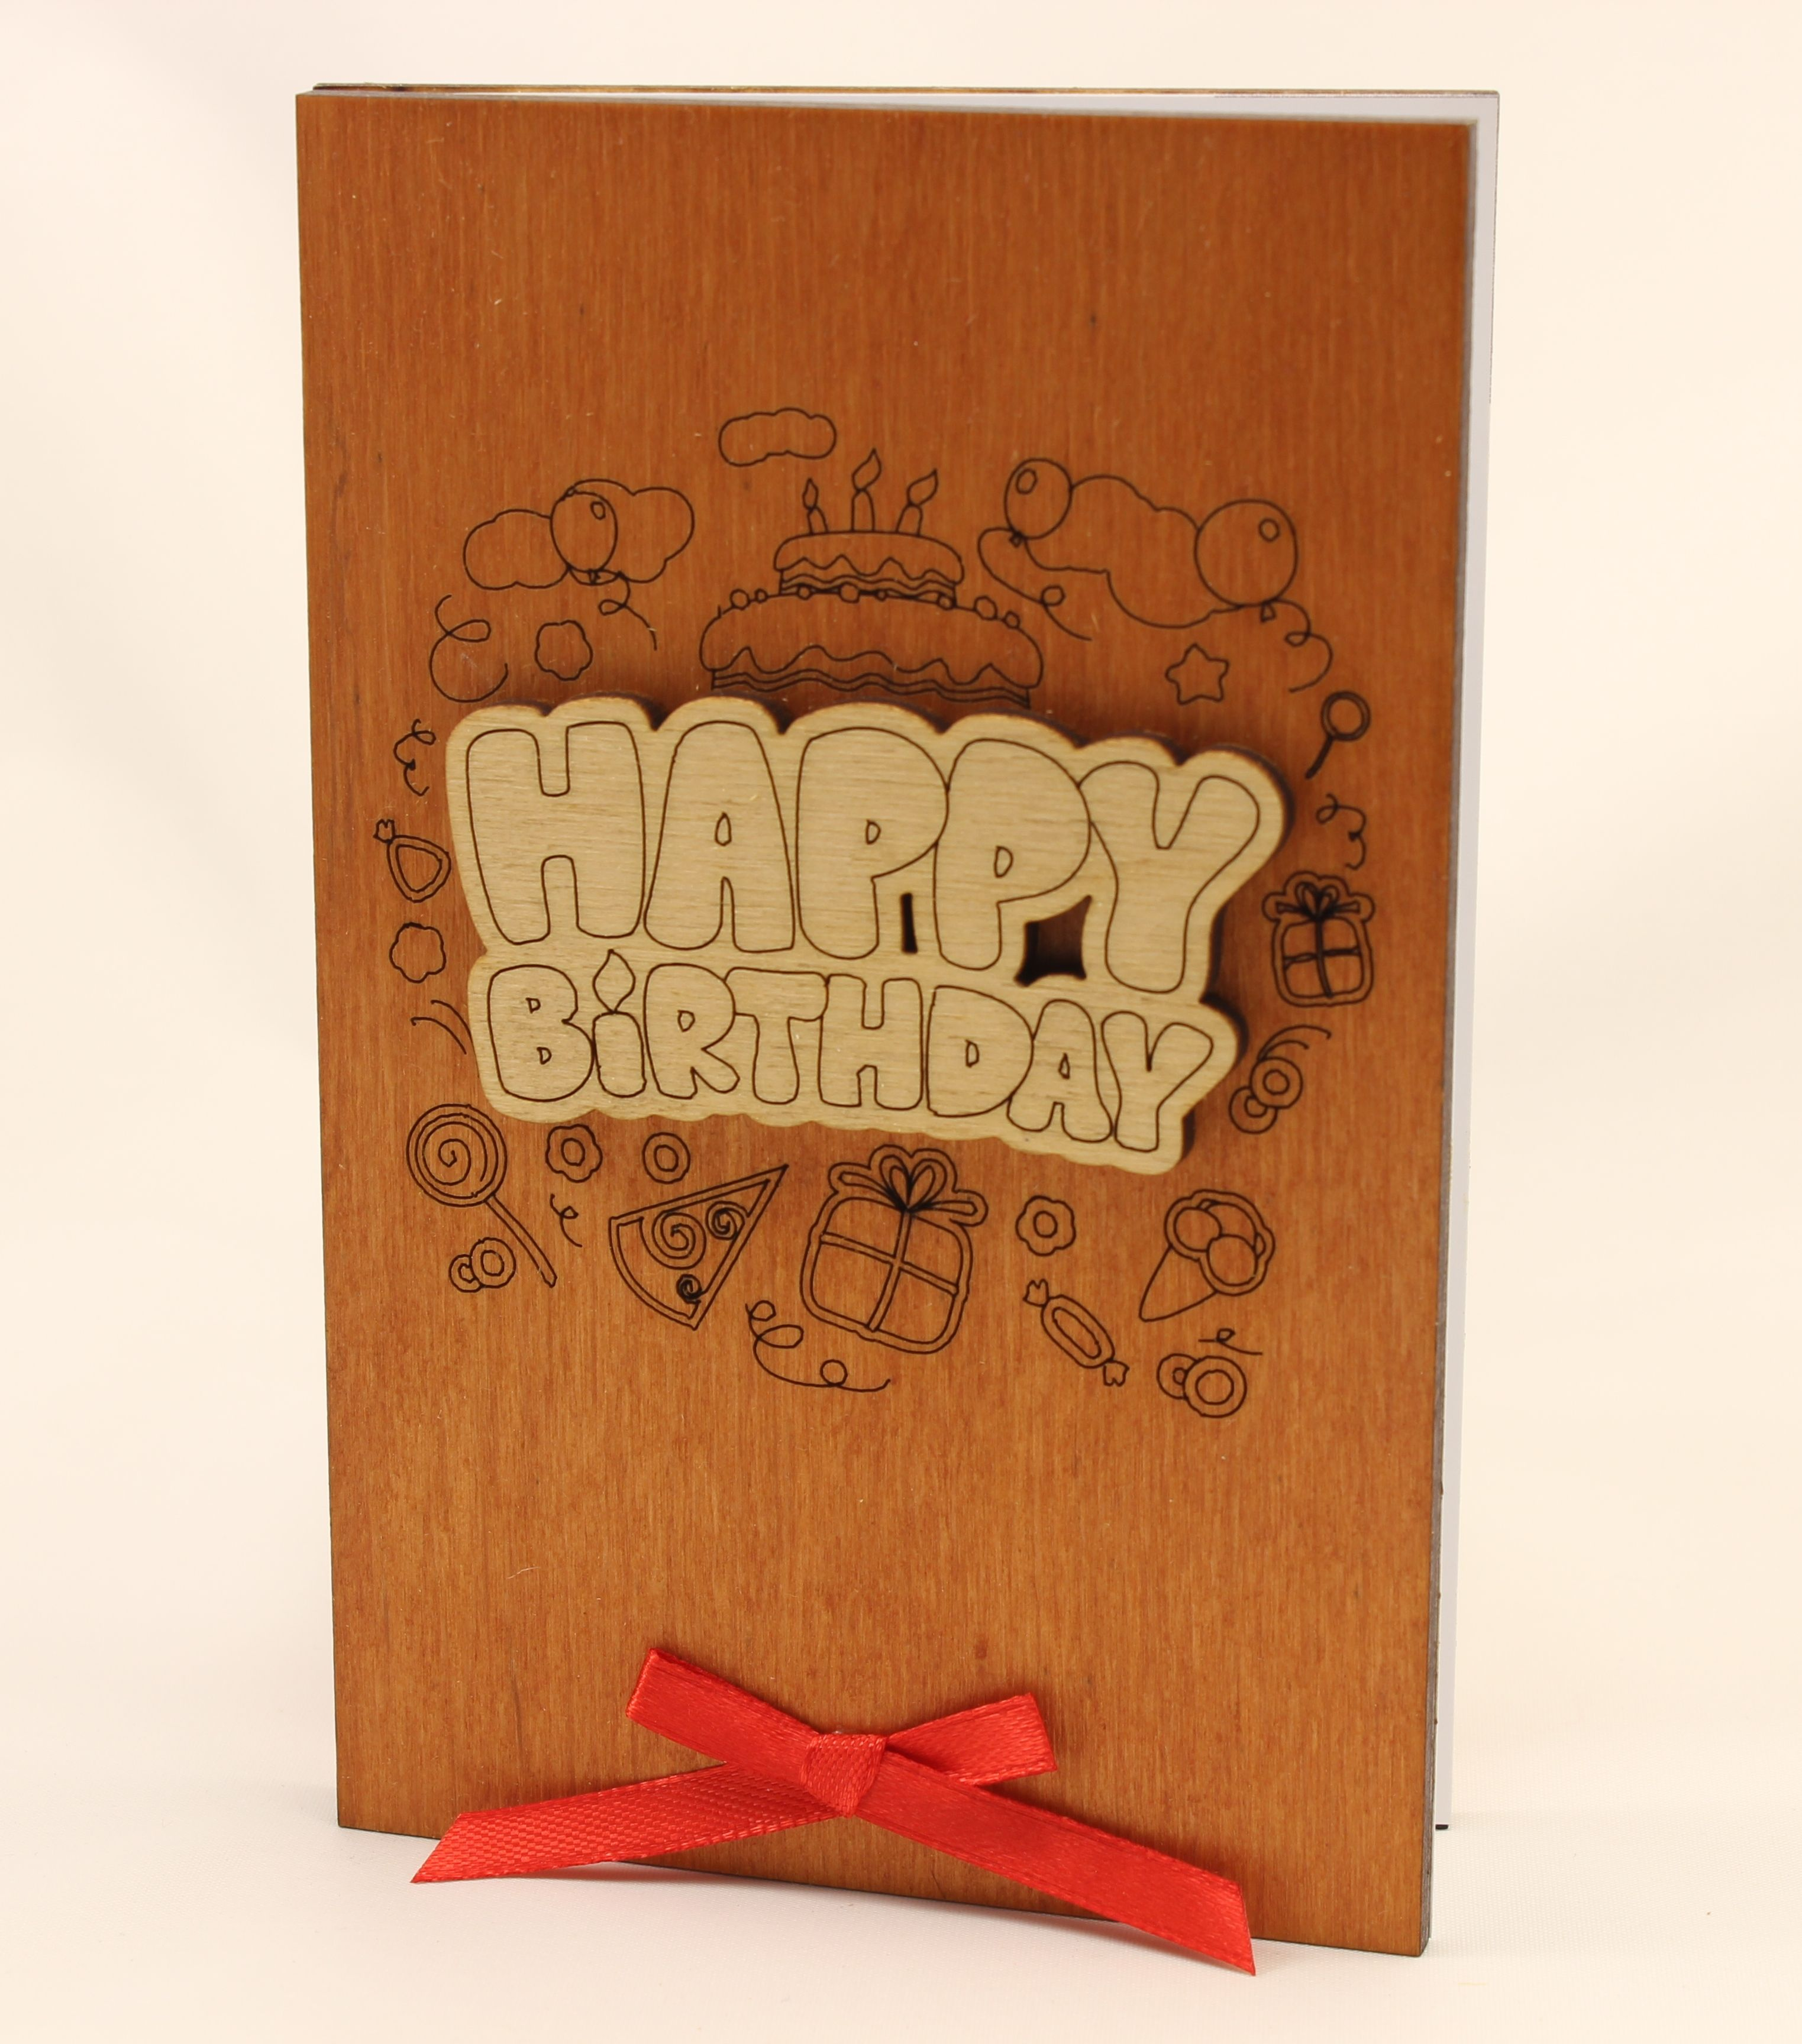 Happy Birthday Card Funny Birthday Wood Gift For Him Boyfriend Men Husband Or Her Girlfriend Women Wife Wooden Present Special Cards Gifts Happy Birthday Card Funny Funny Birthday Cards Birthday Gifts